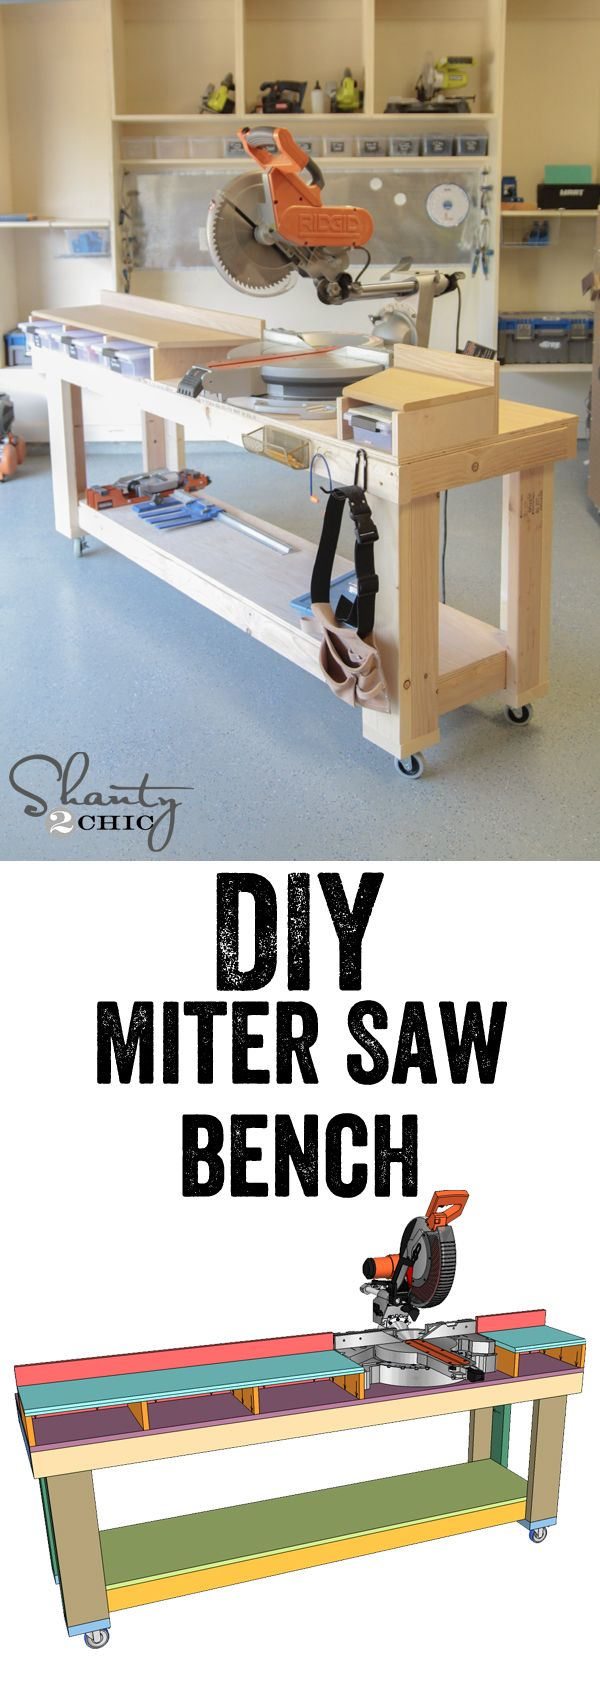 Free DIY Project Plan: Build a Mobile Miter Saw Workbench